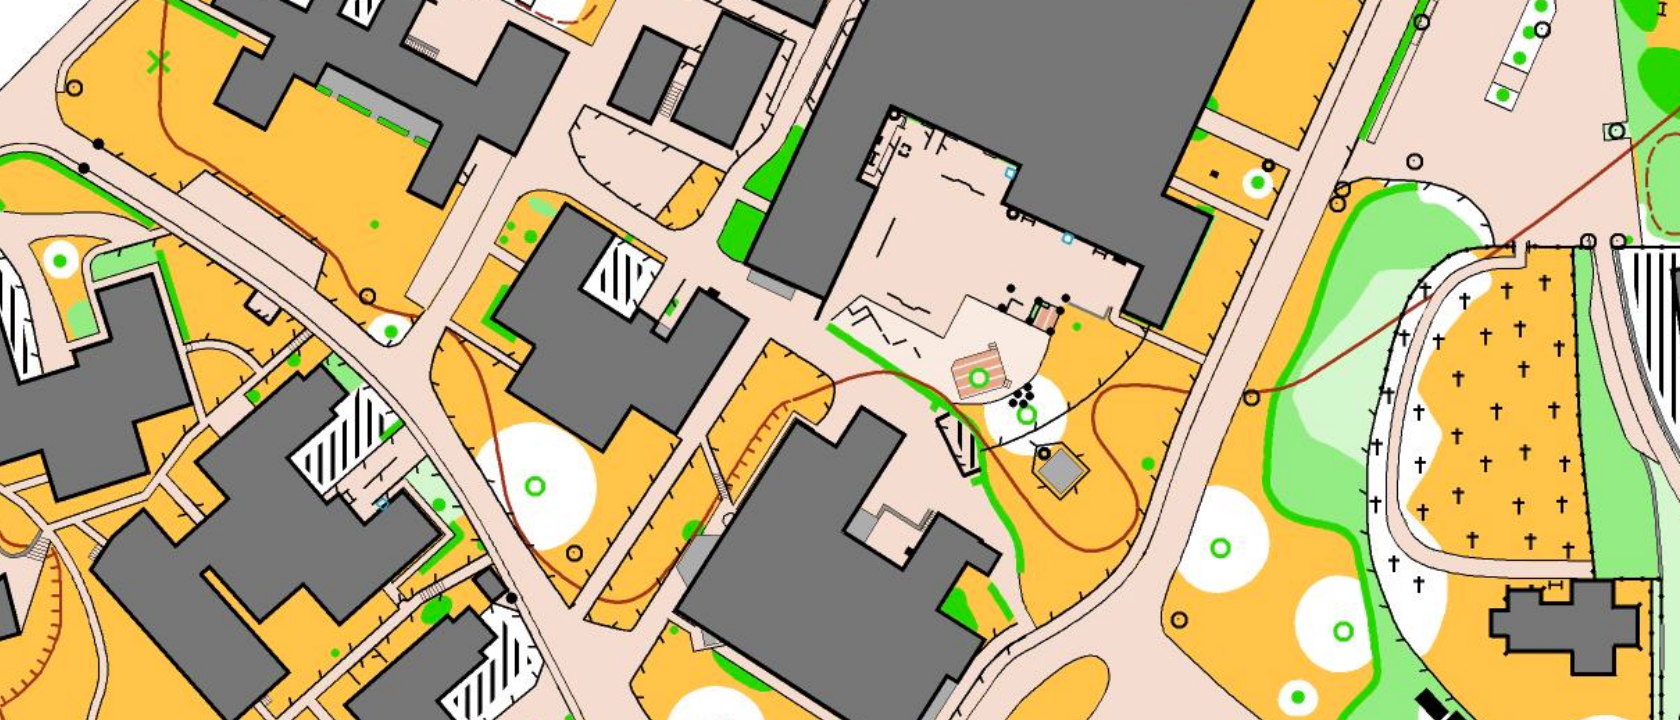 Orienteering Mapping and Permanent Course Installation